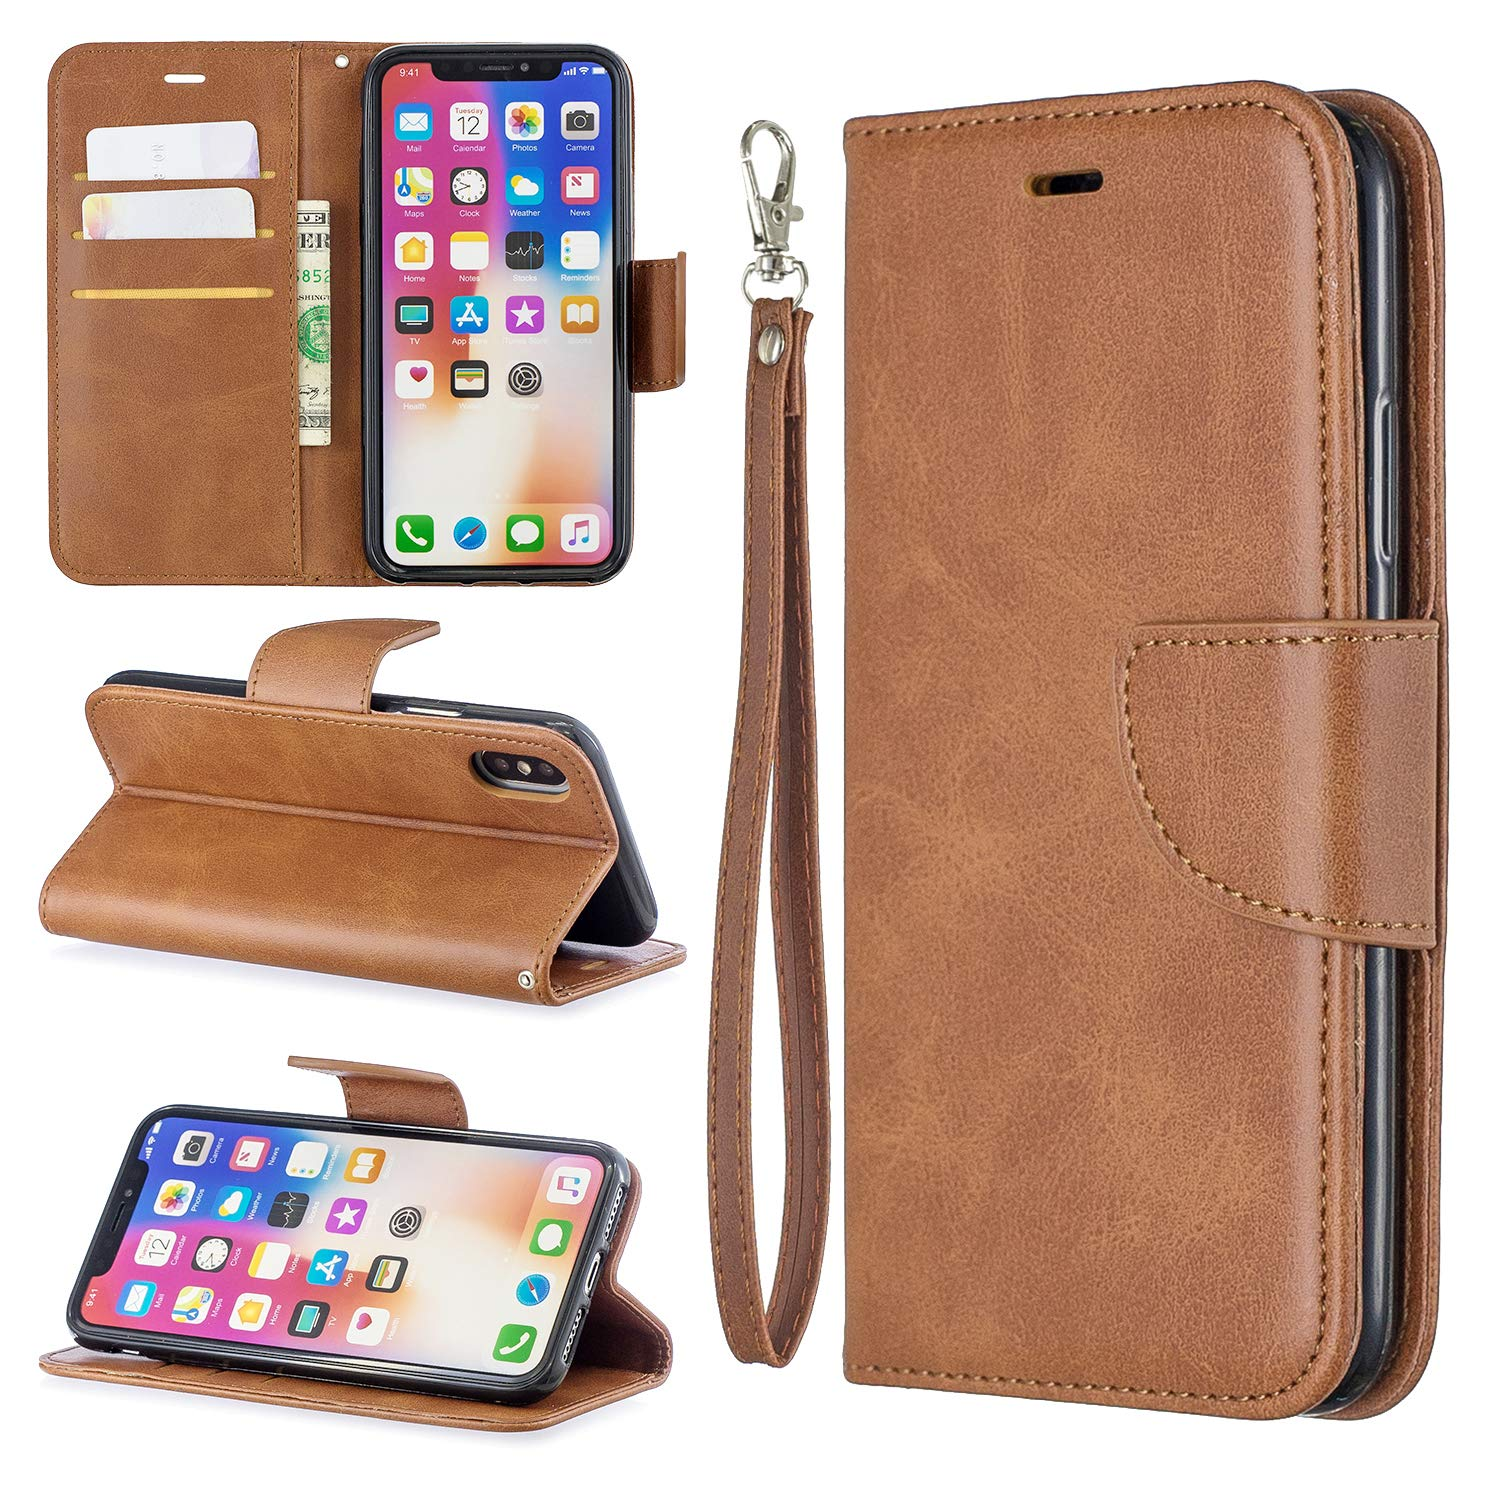 EYZUTAK Wallet Case for iPhone X/XS, Soft Printed PU Leather Phone Case Full Protection Solid Color Magnetic Flip Buckle Case Kickstand Cover for iPhone X/XS - Brown